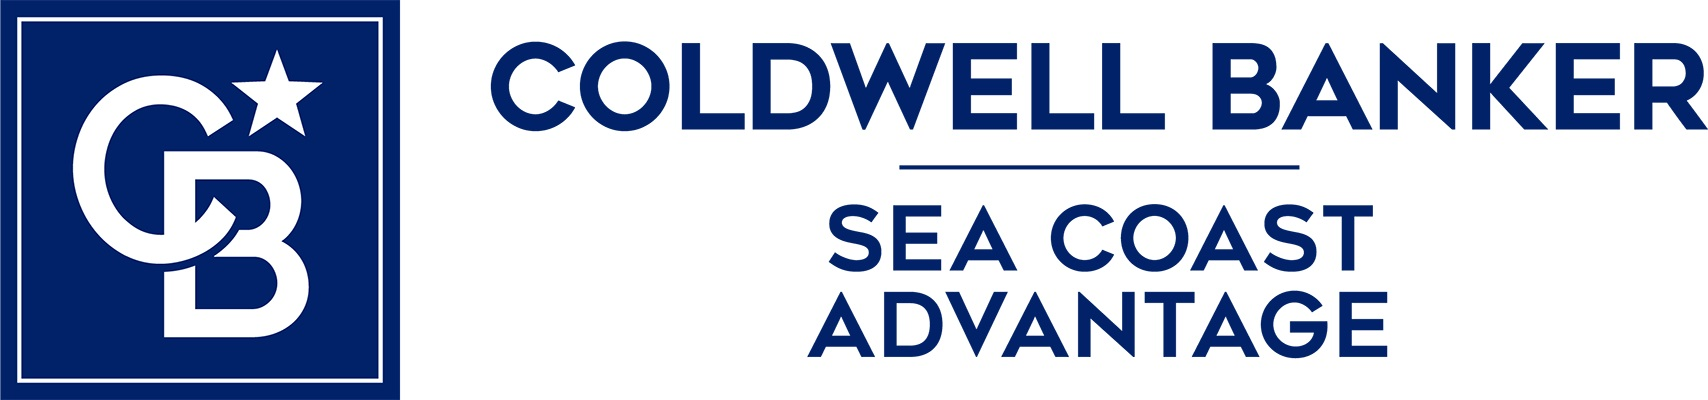 Tina Dawson - Coldwell Banker Sea Coast Advantage Realty Logo